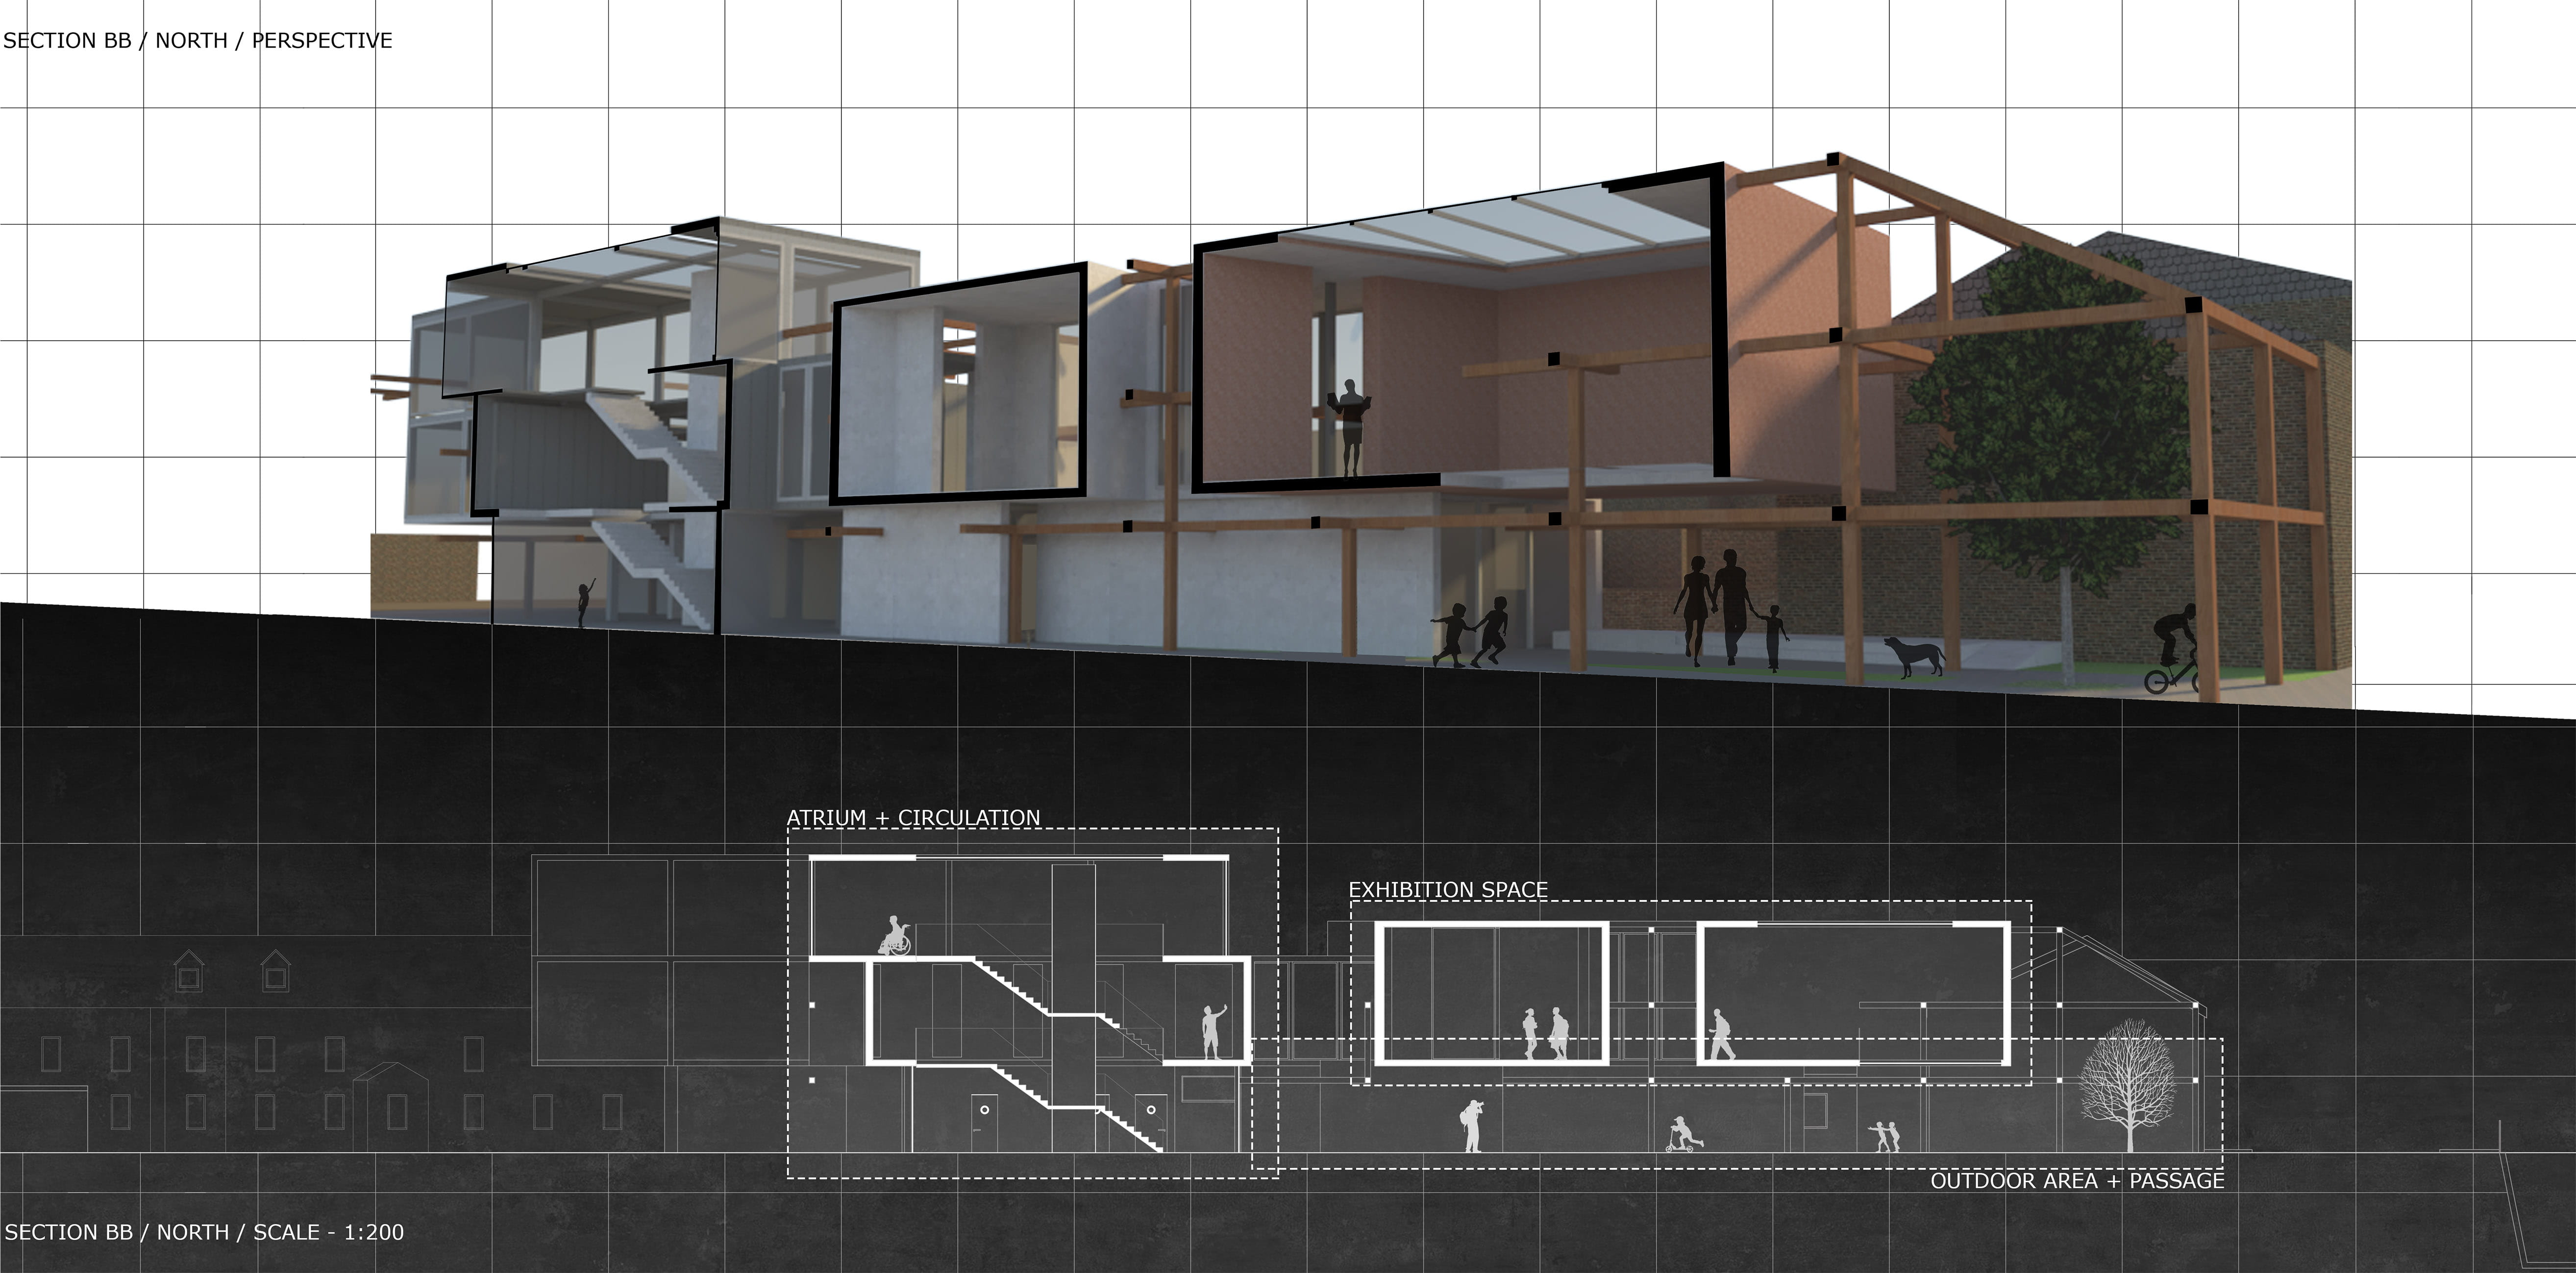 Perspective and 2D views of the same section cut, demonstrating natural light, spatial qualities and the buildings positive uses.